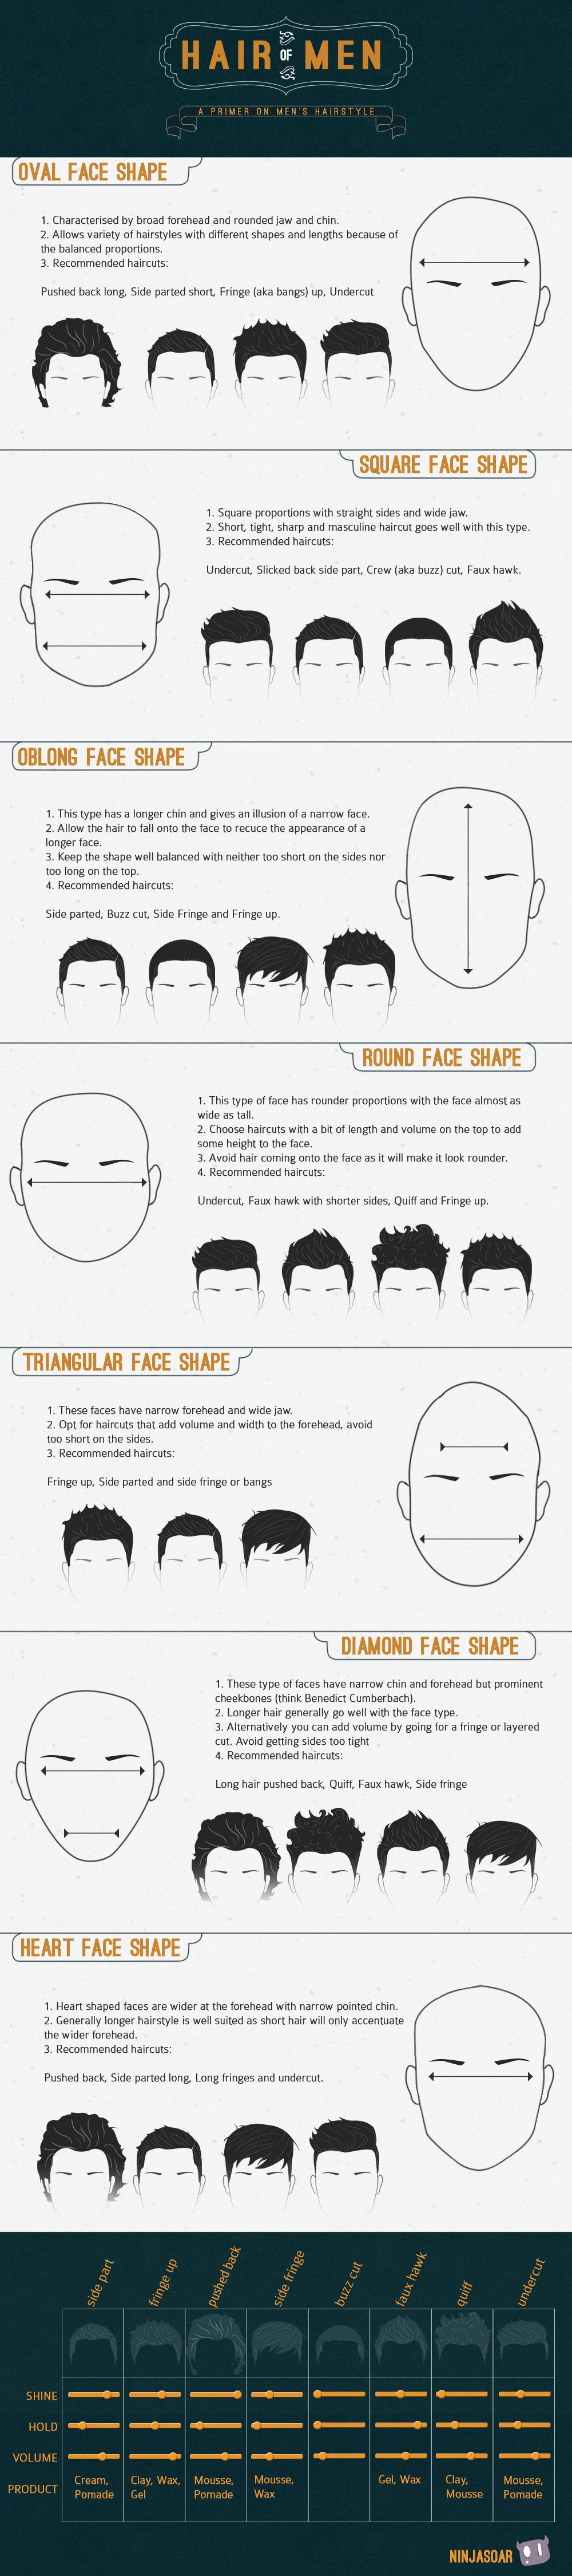 Diy haircut men hair of men  hair vision board  pinterest  haircuts shapes and face